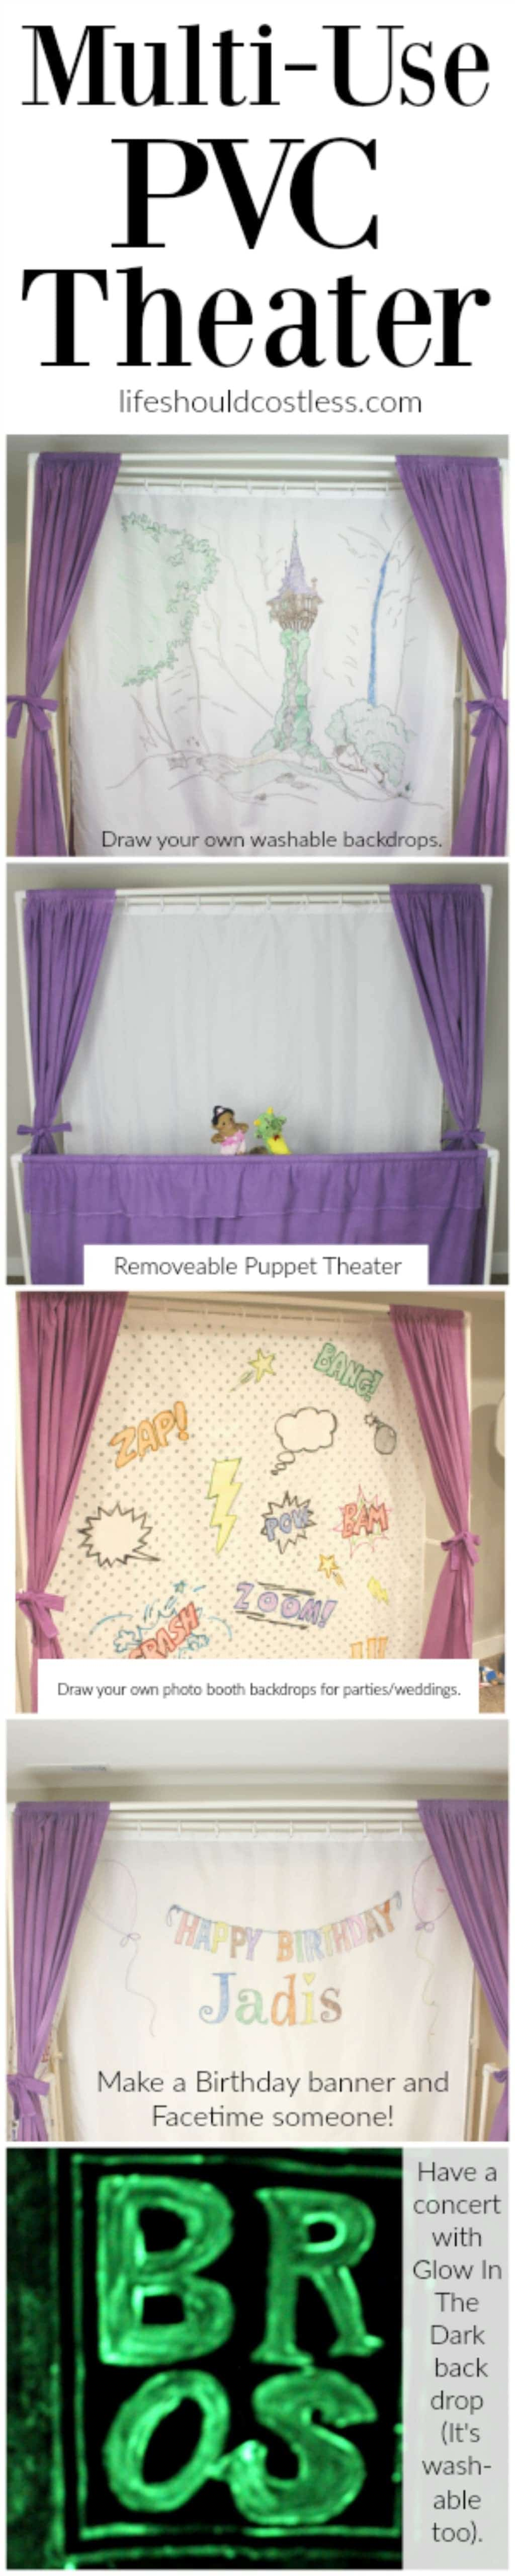 Multi-Use PVC Theater with washable and glow-in-the-dark backdrop options..